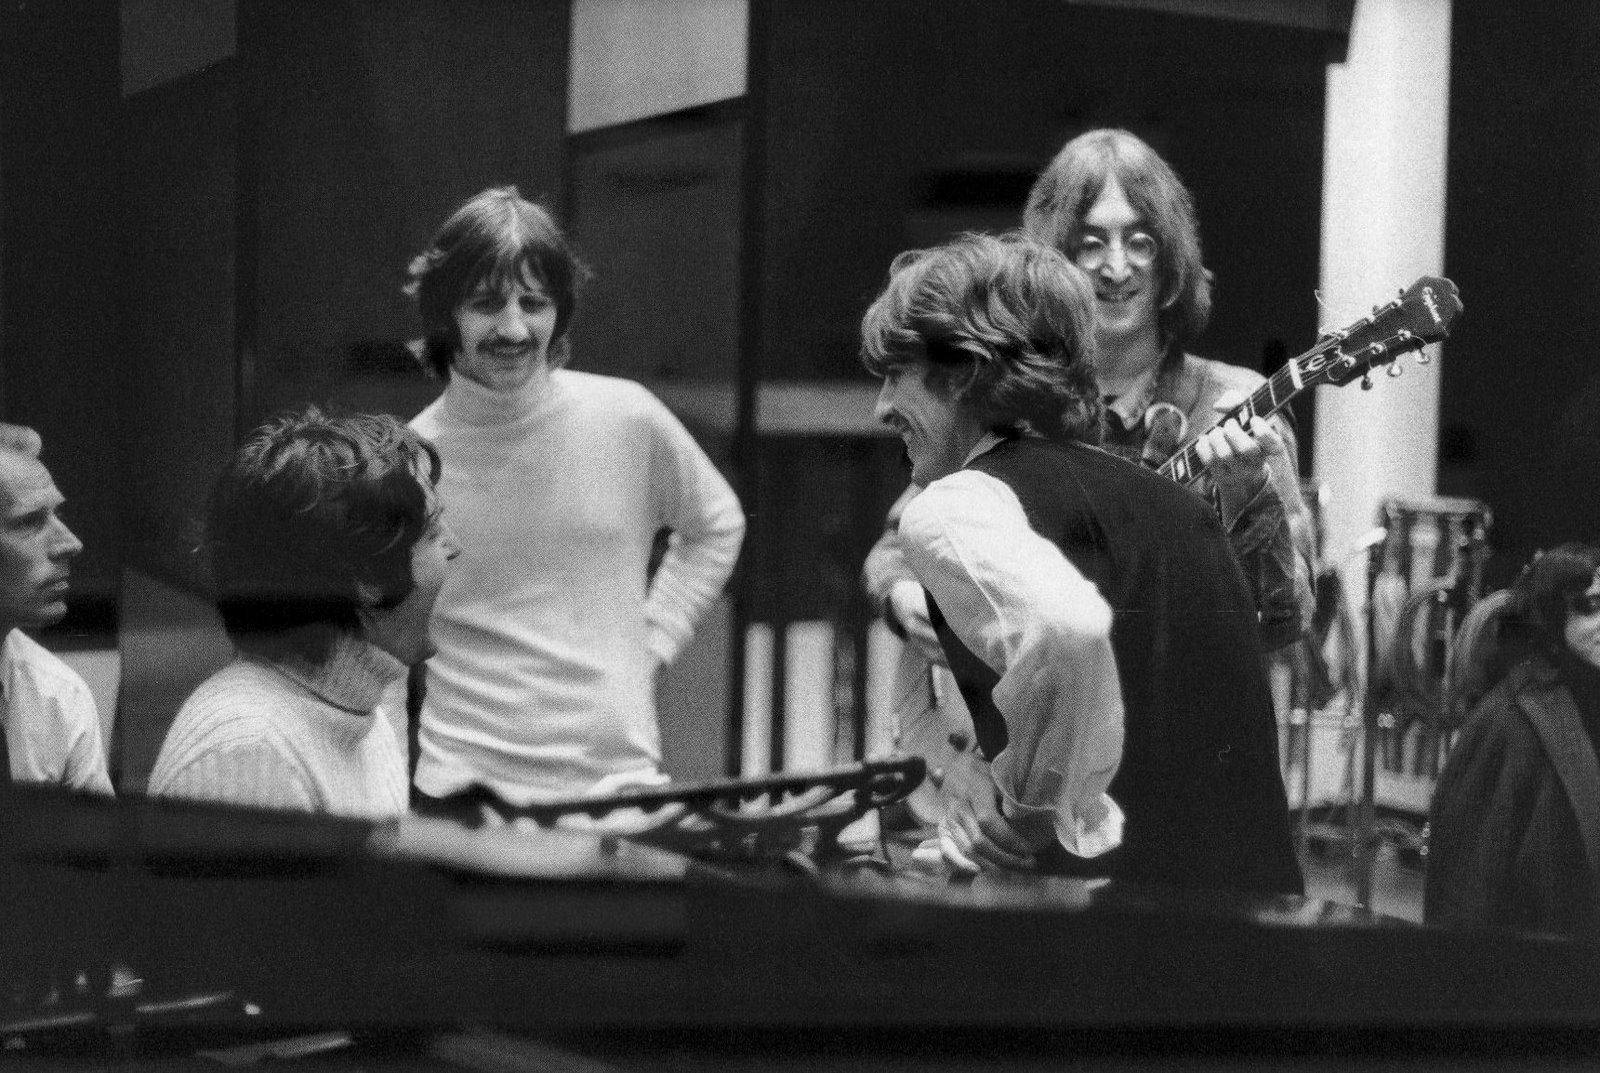 ãbeatles recording engineer abbey road 1968 white albumãã®ç»åæ¤ç´¢çµæ